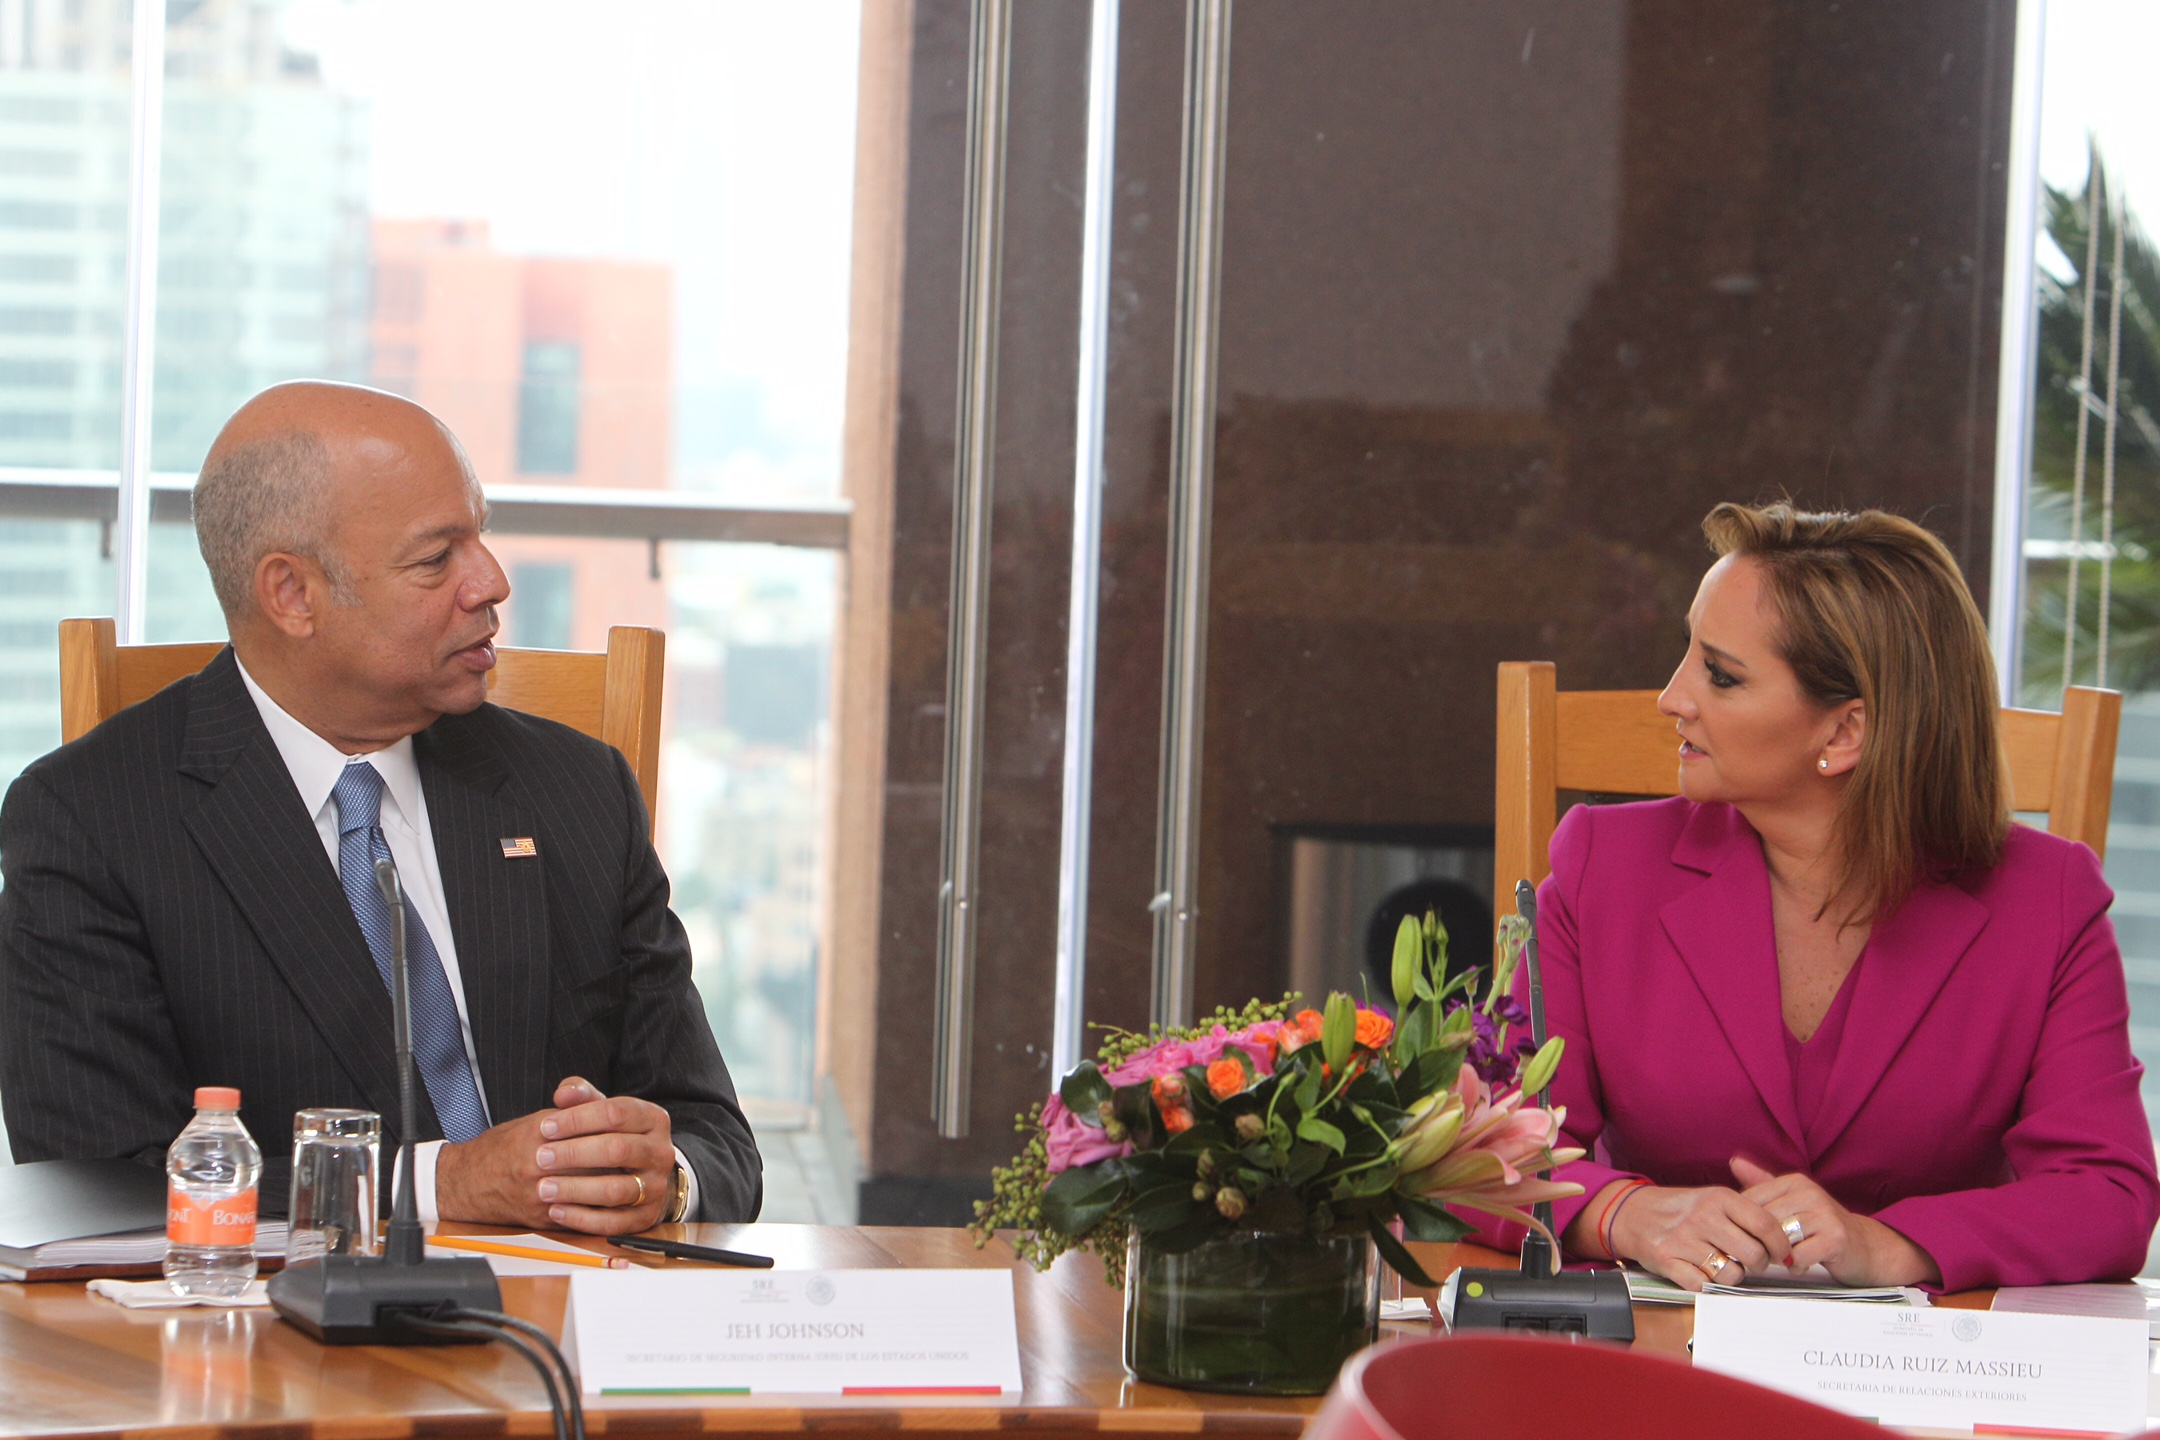 /cms/uploads/image/file/212010/Foto_3_Canciller_Ruiz_Massieu_y_Secretario_Jeh_Johnson.jpg